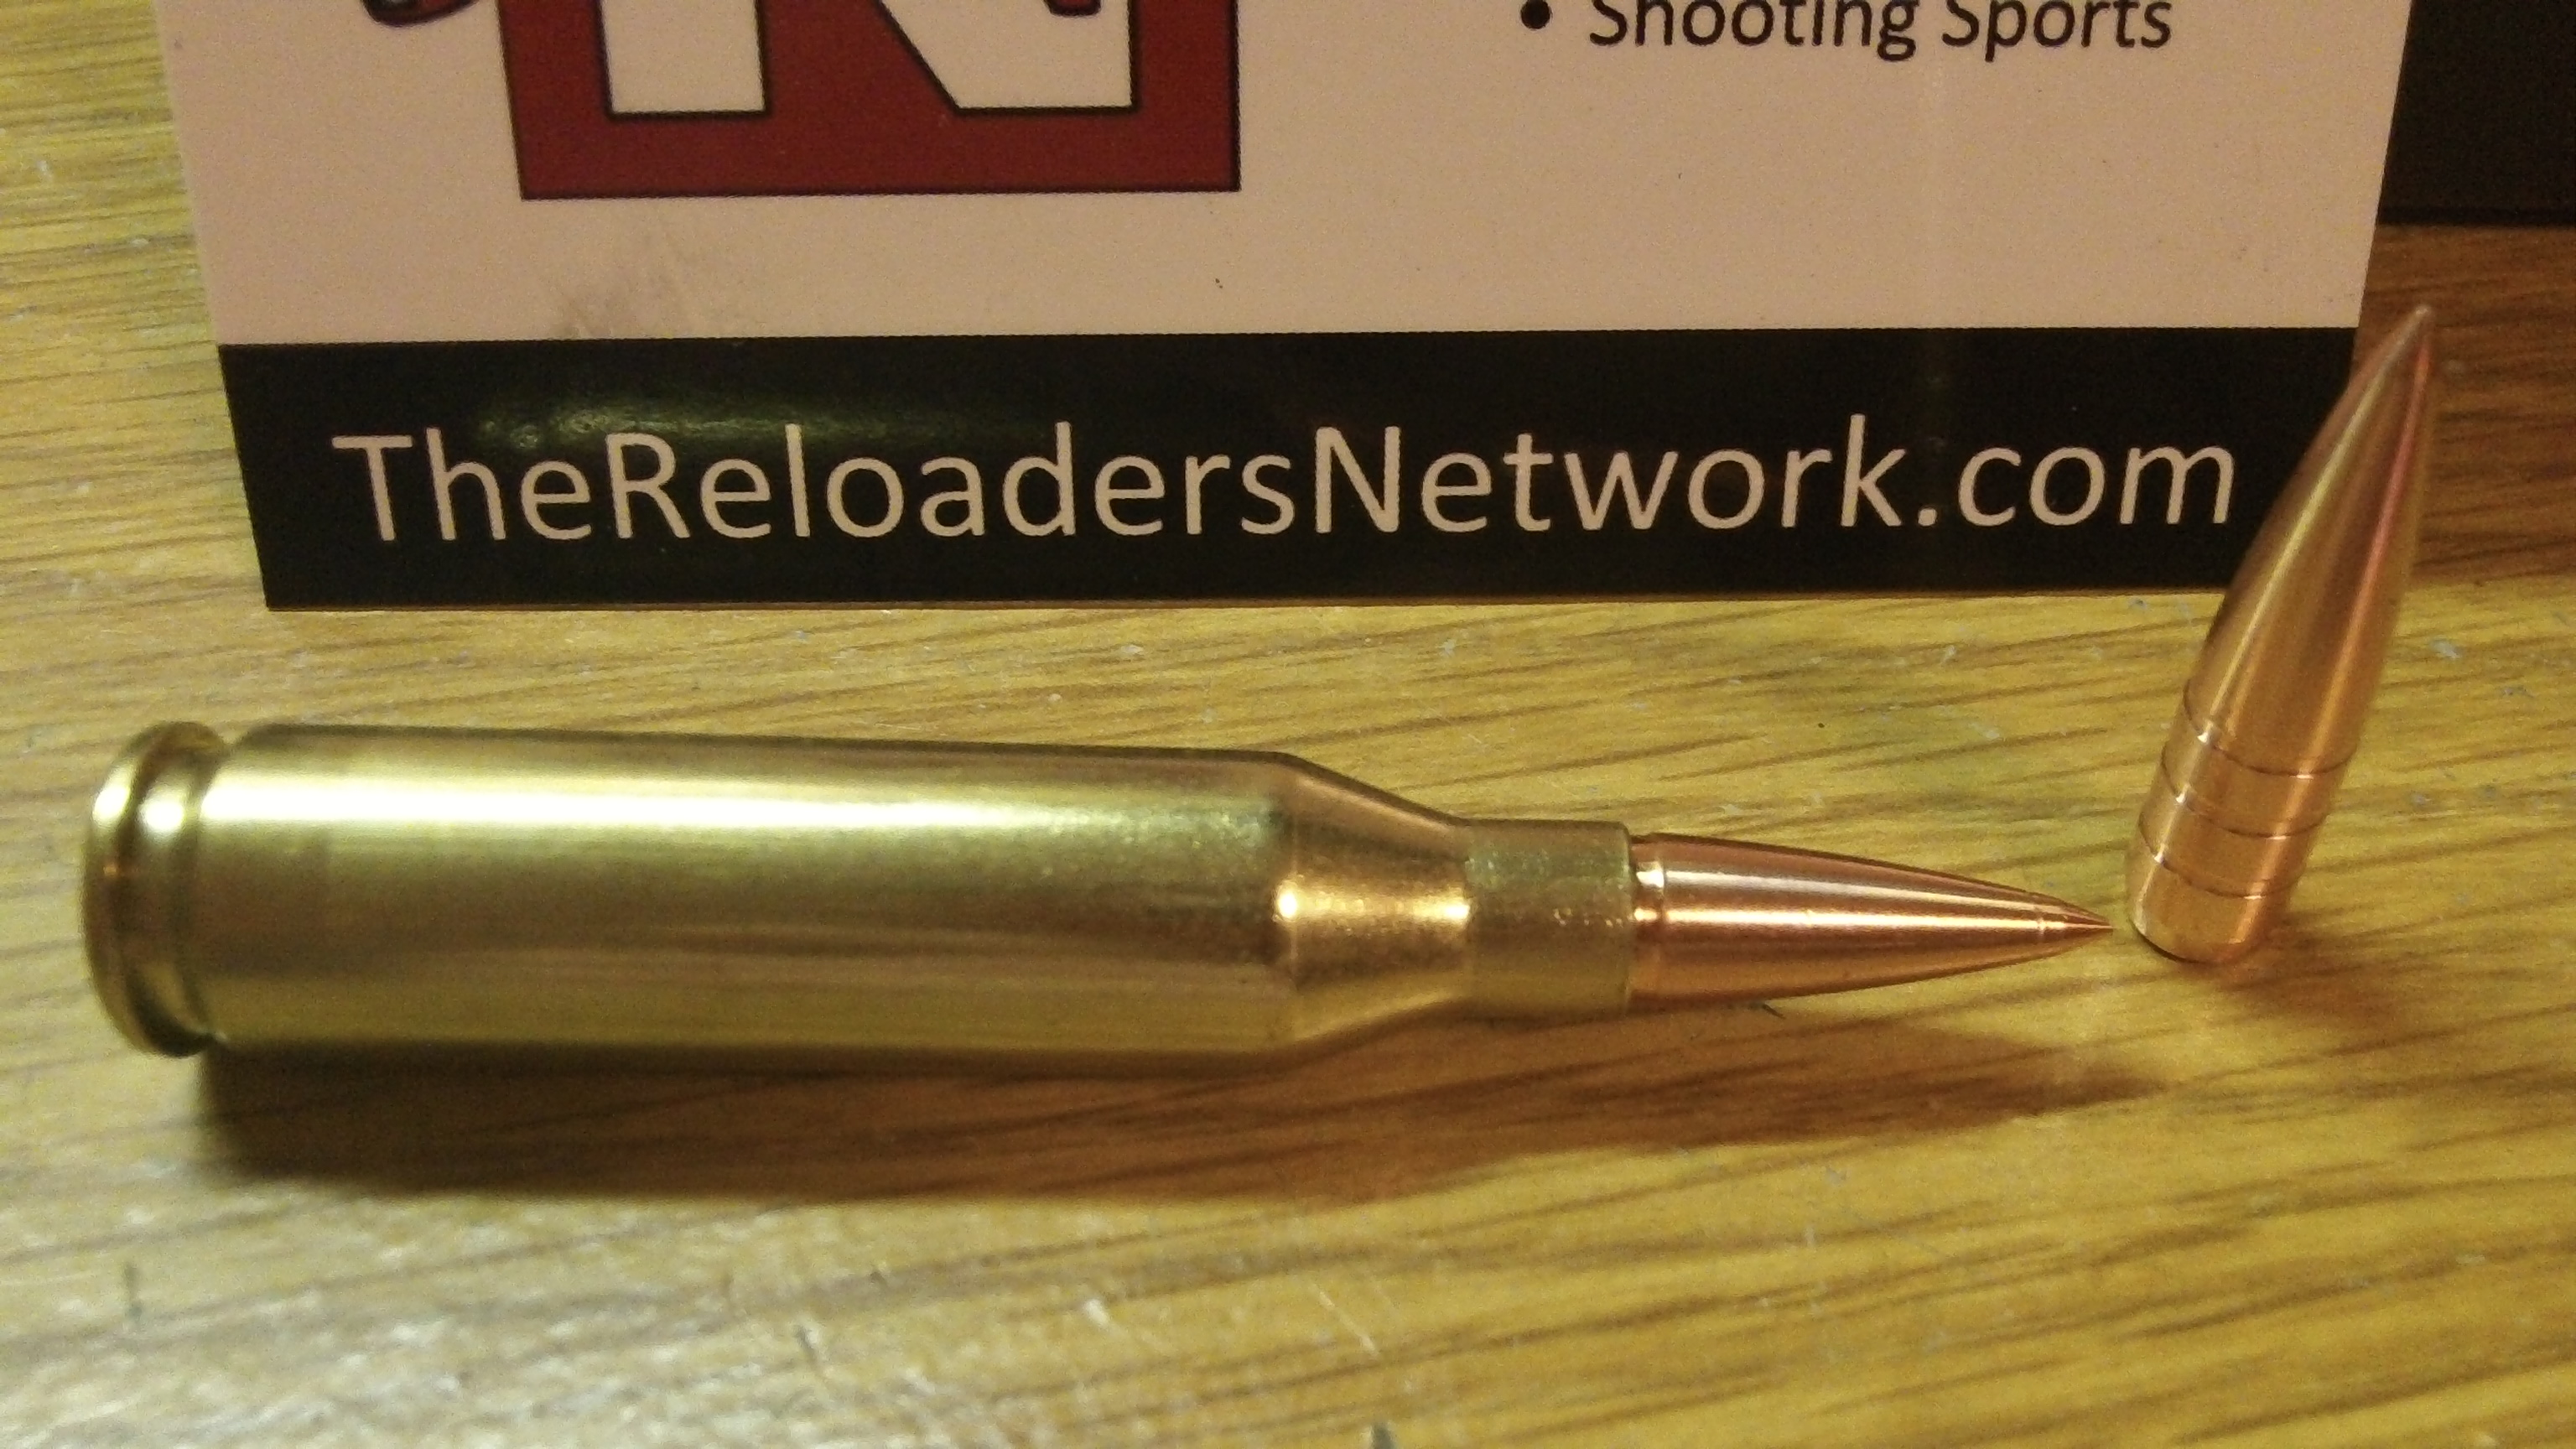 H4350 Archives - The Reloaders Network